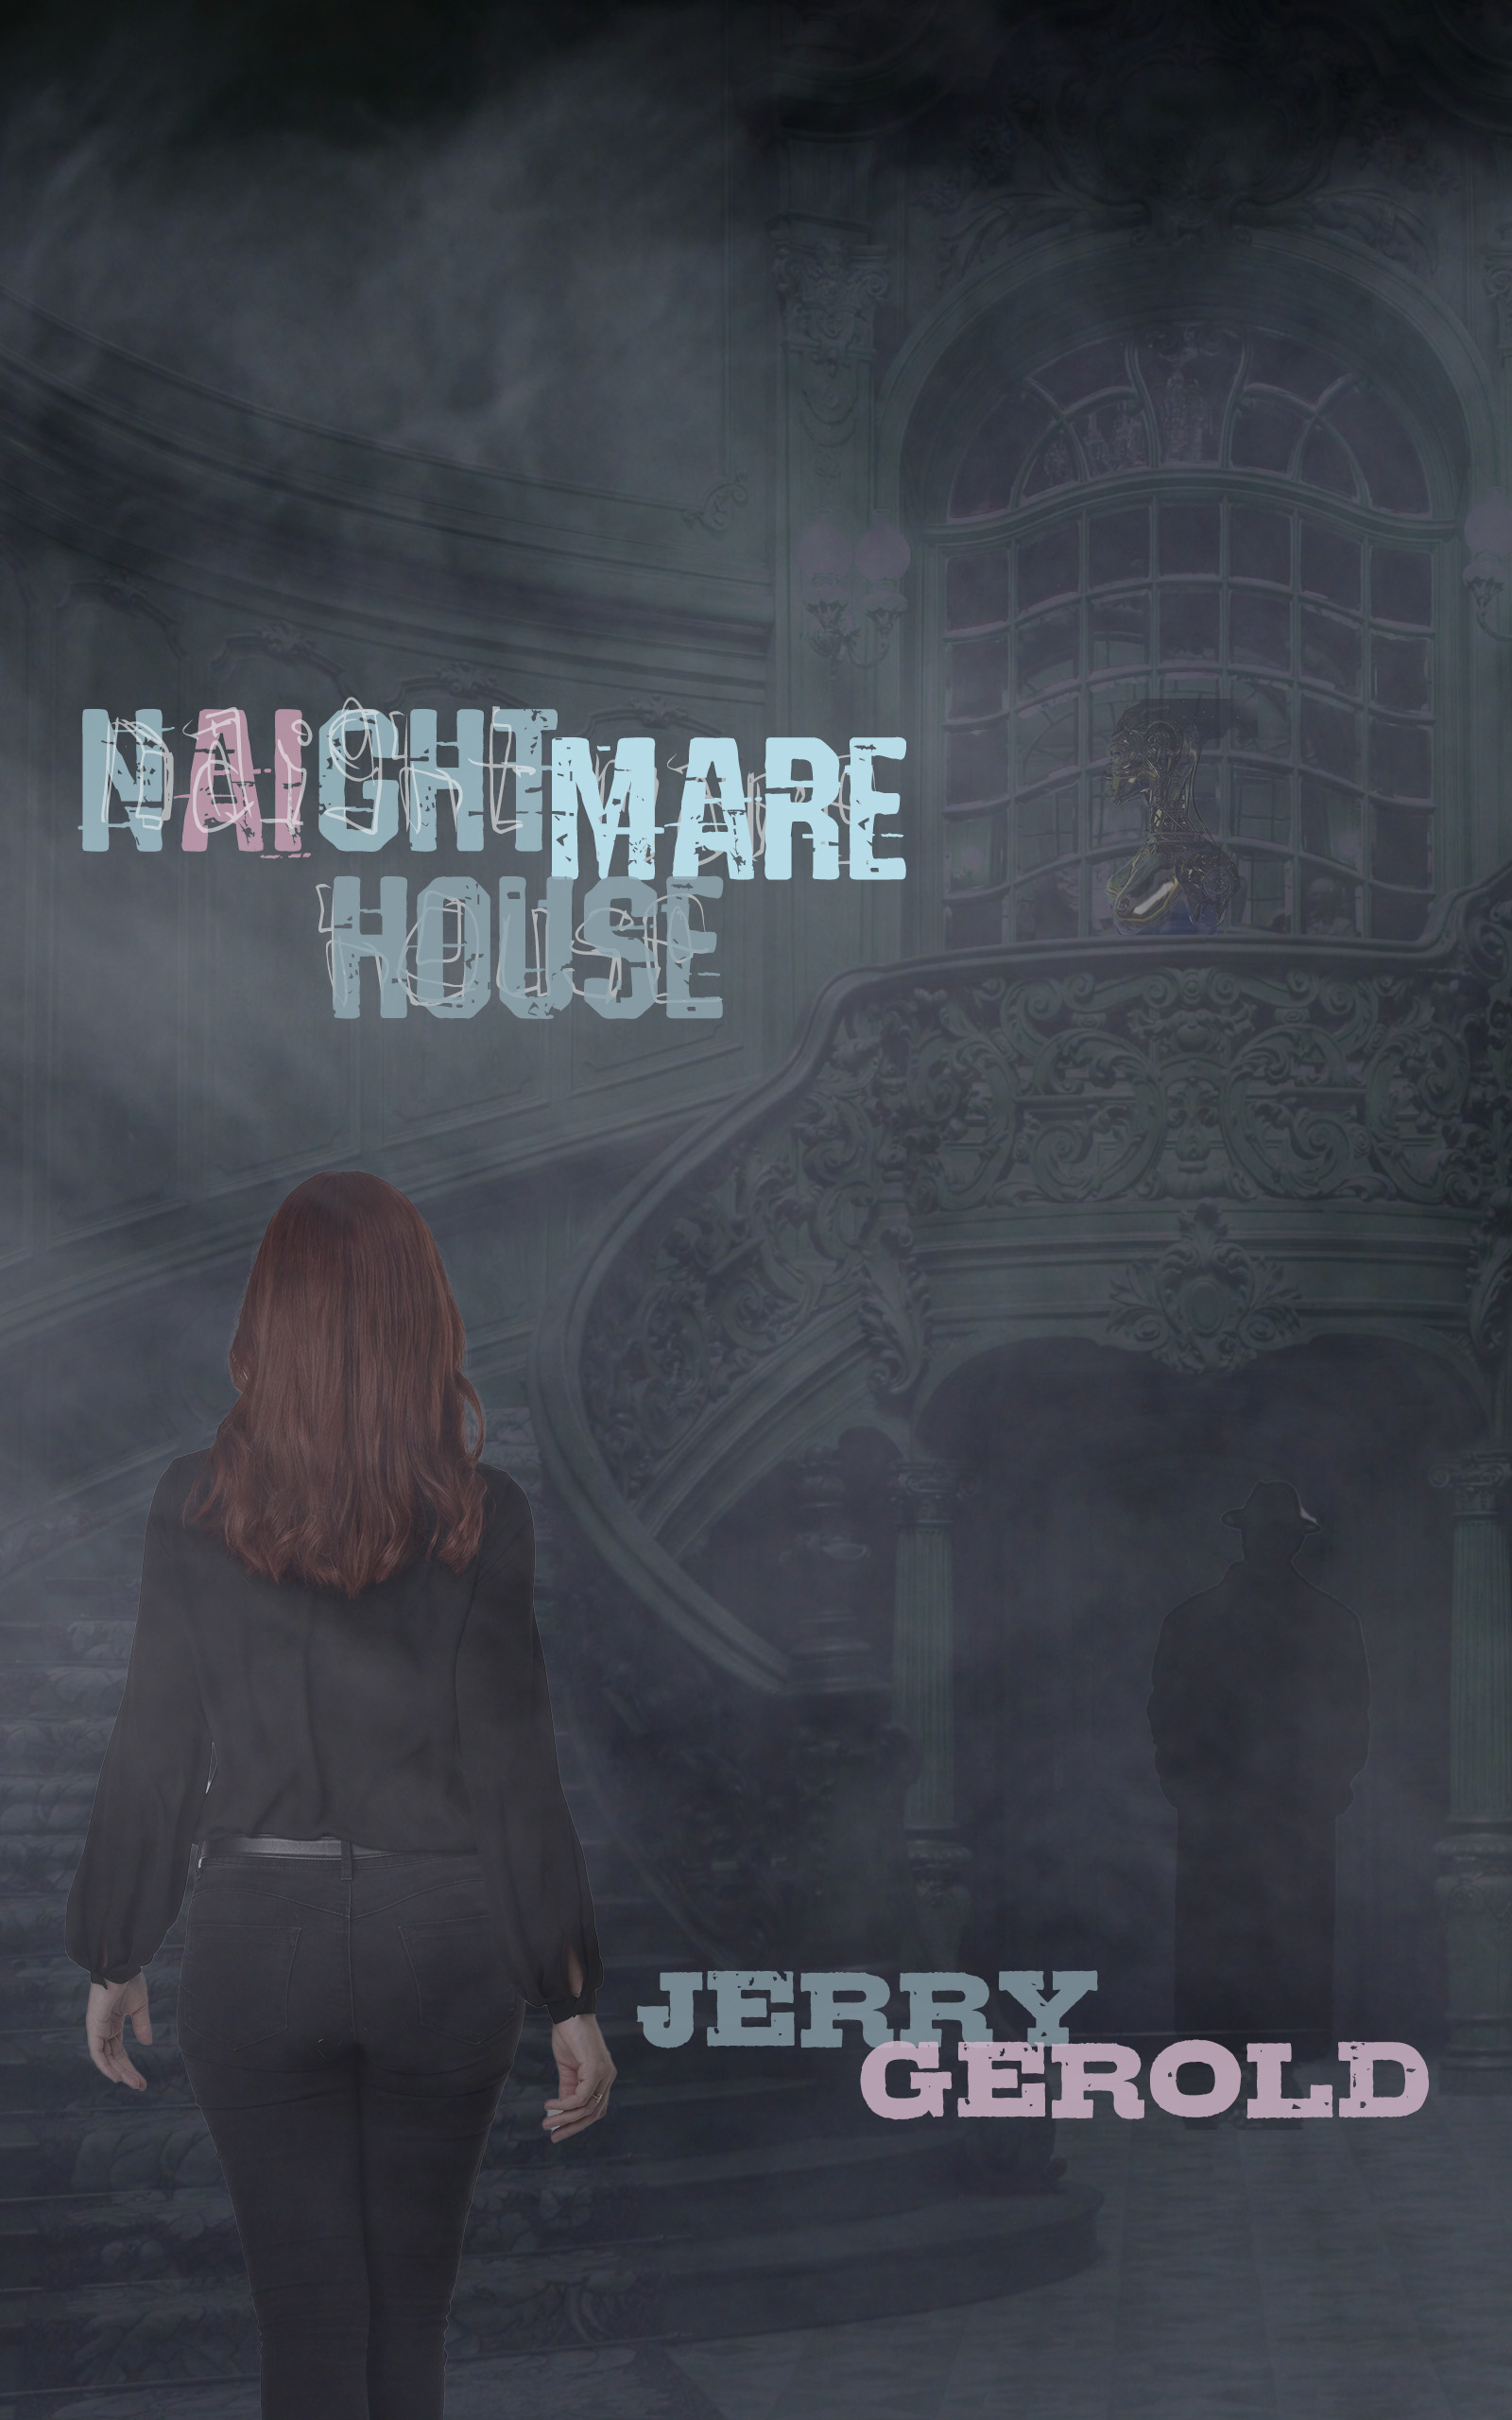 Naightmare House Stairs with woman and titles SCRATCH